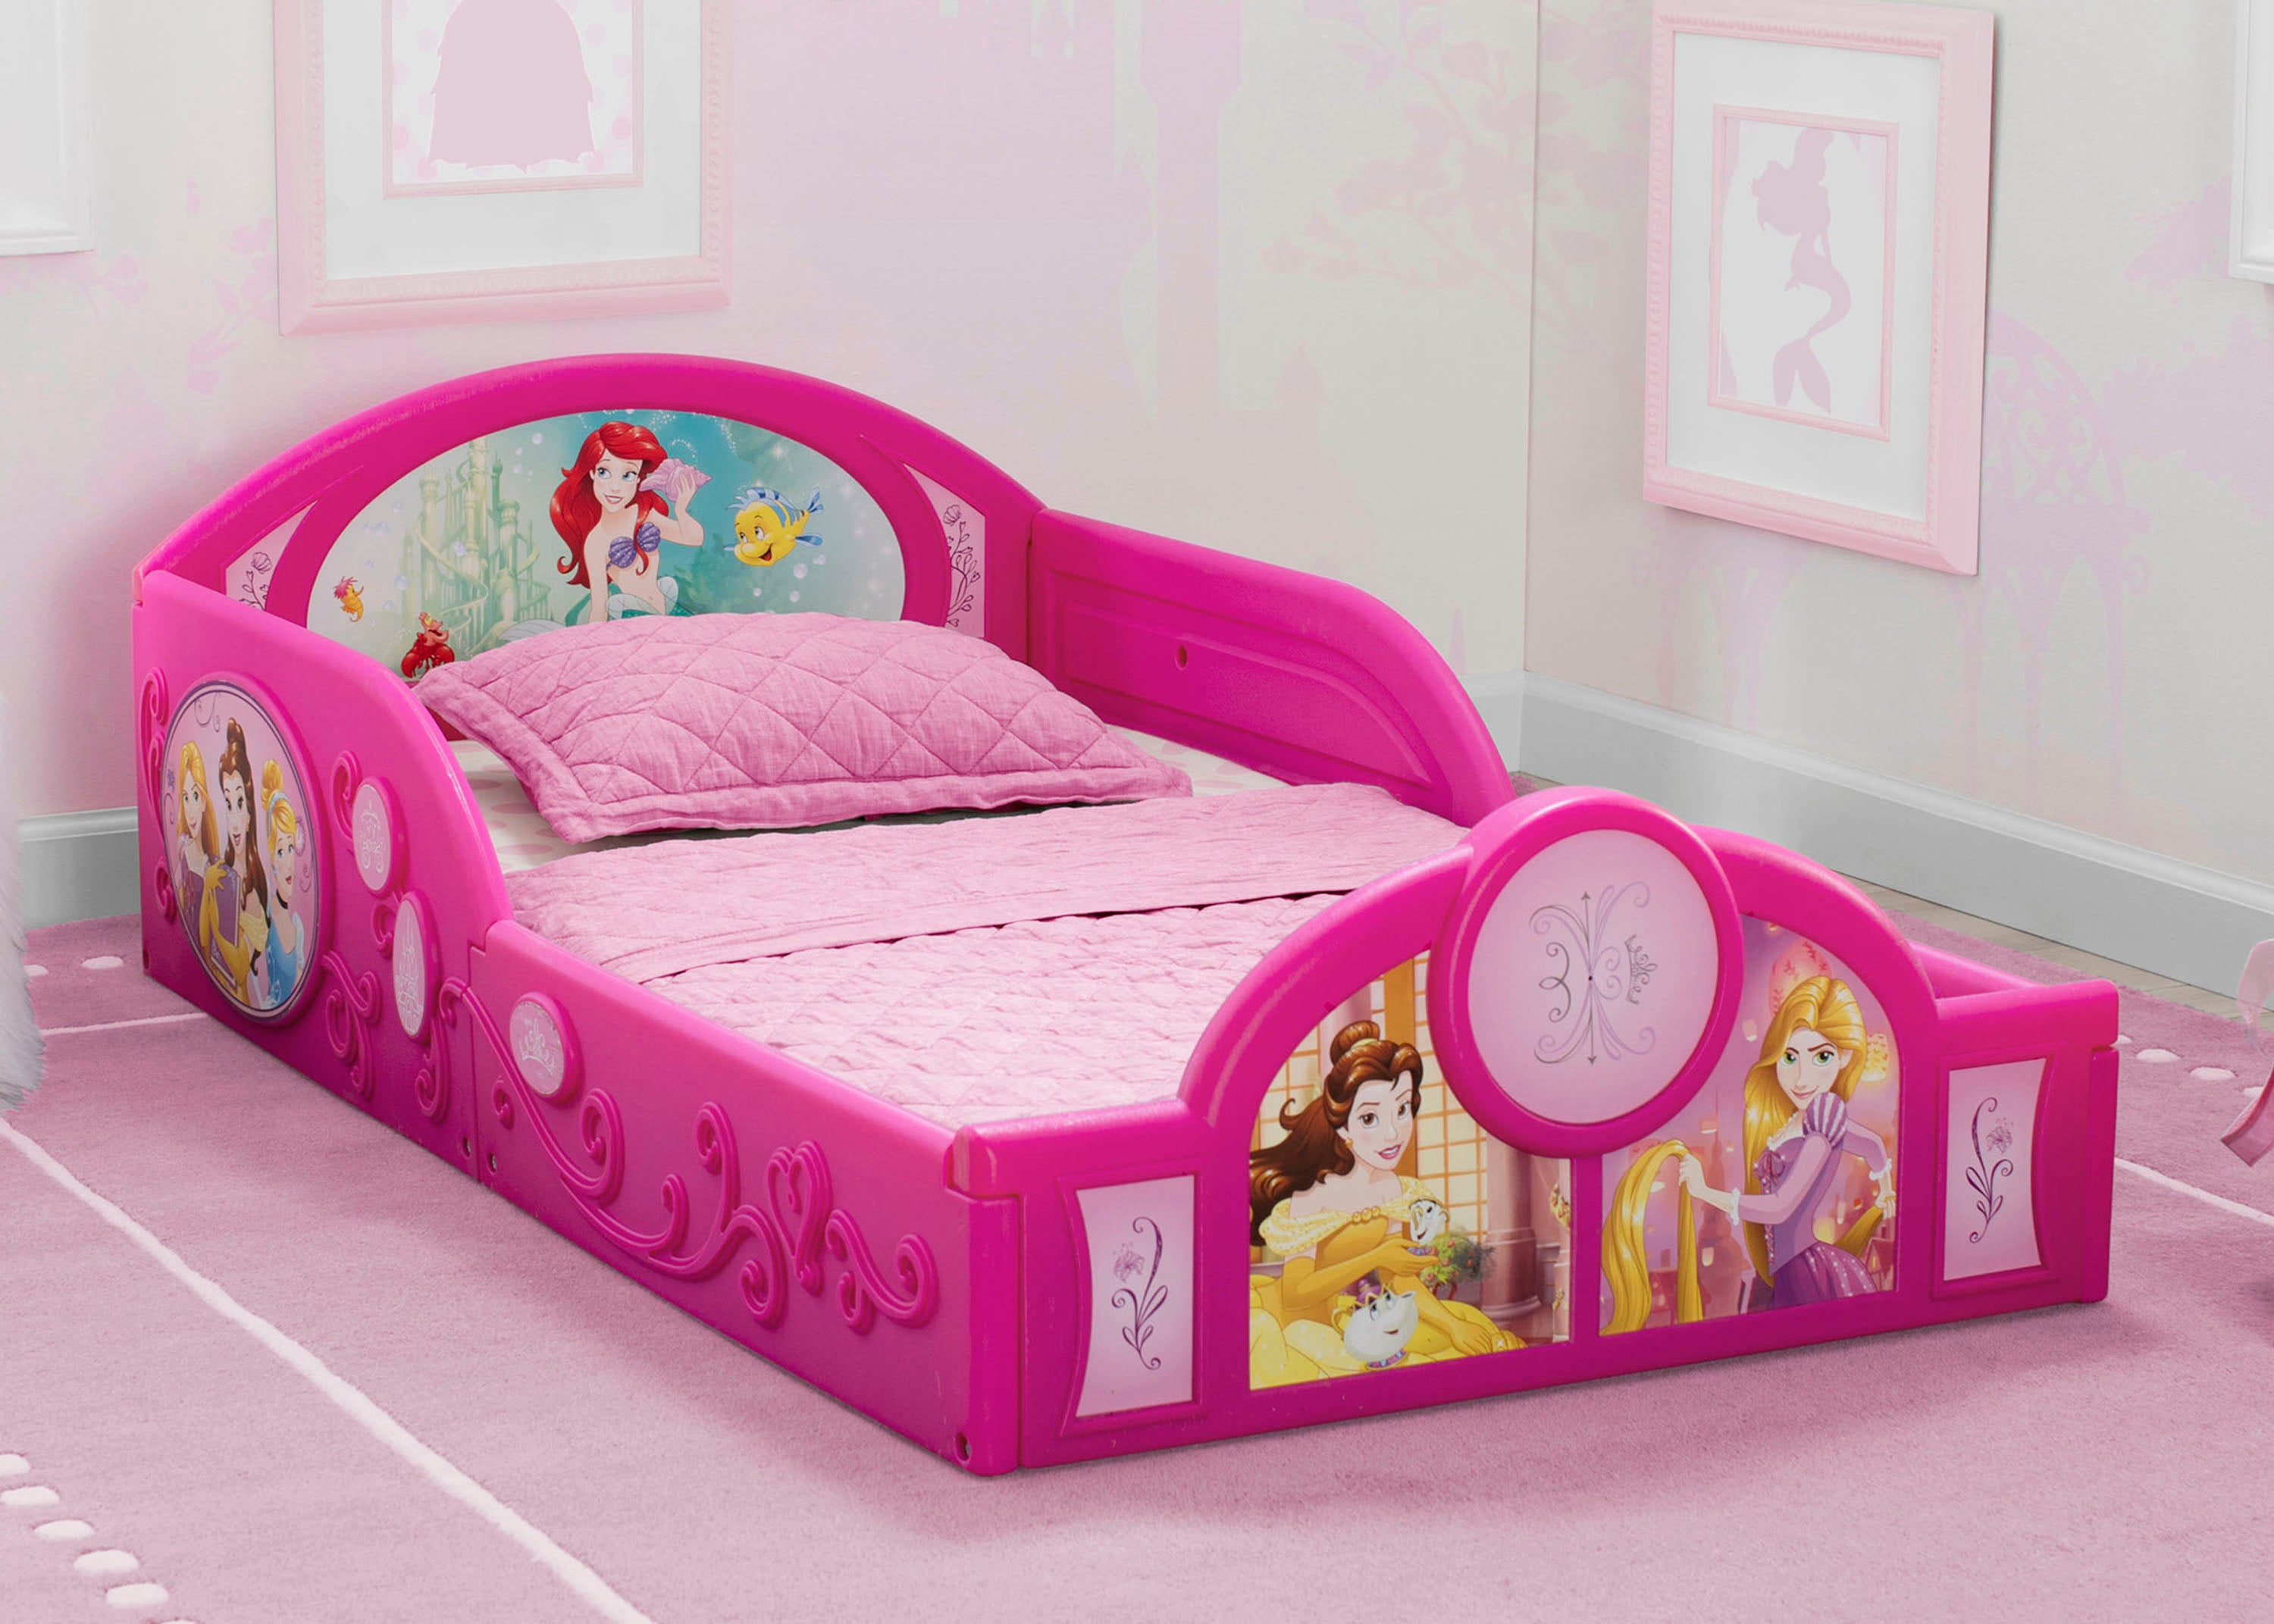 Princess Deluxe Toddler Bed With Attached Guardrails Delta Children